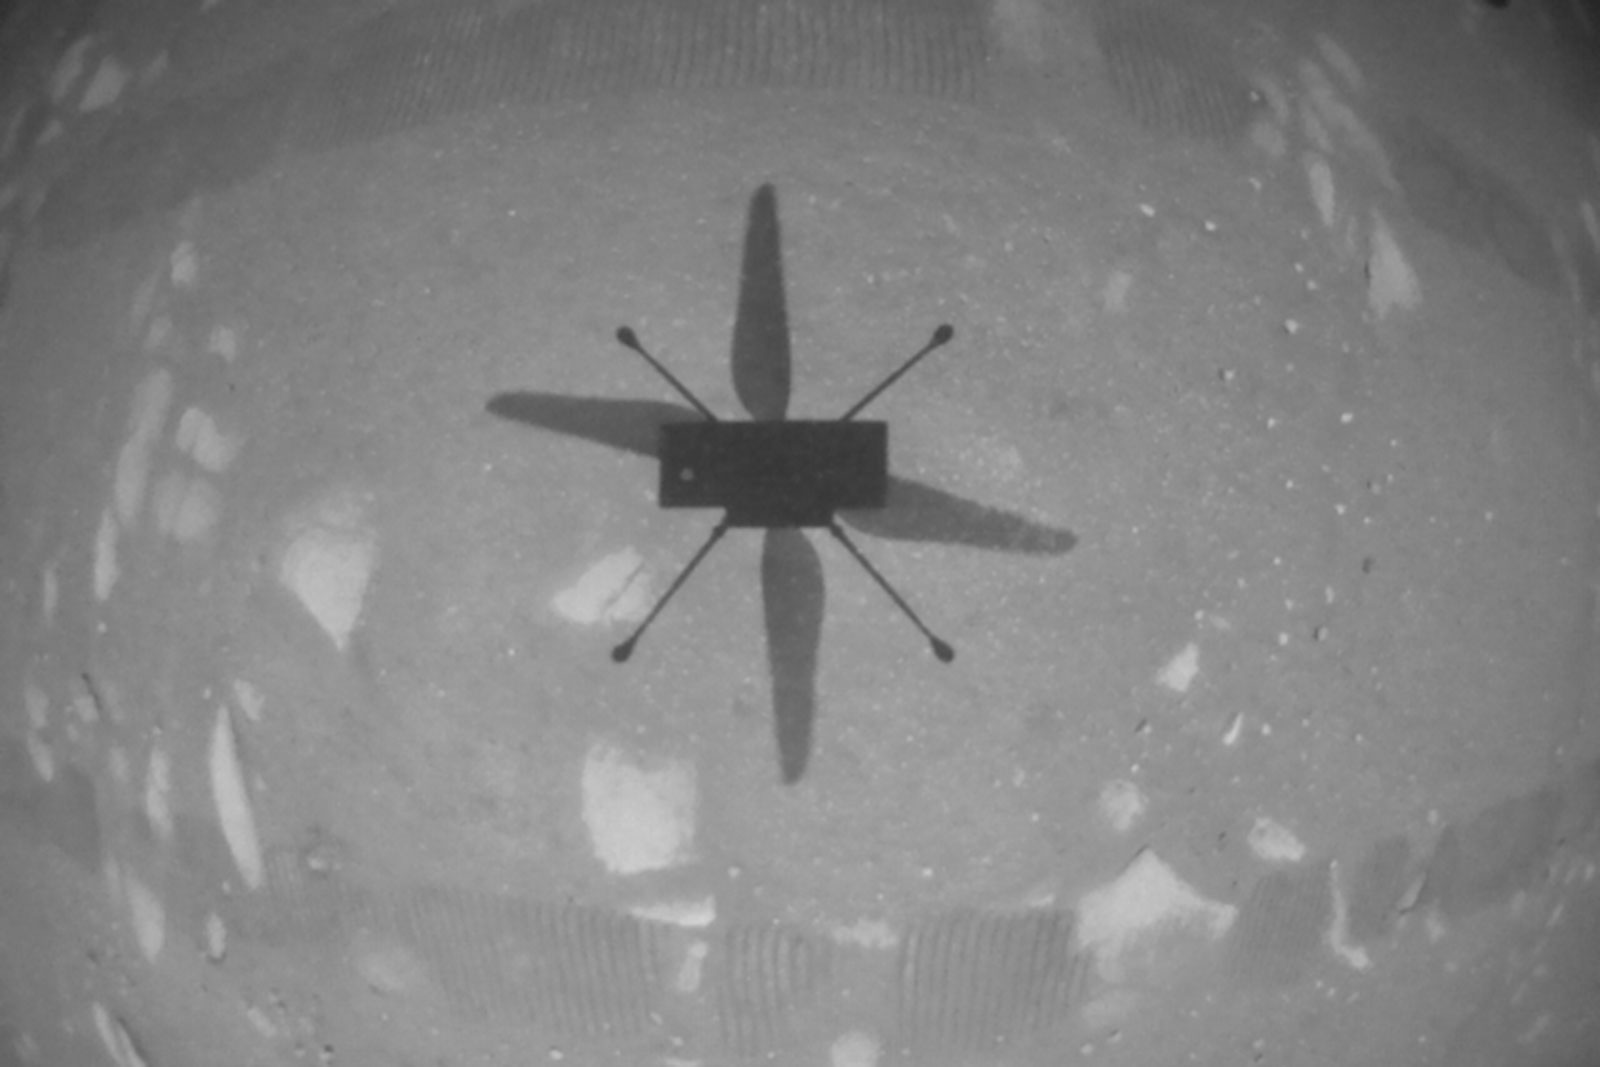 NASA's Mars helicopter became the first plane to fly on another planet